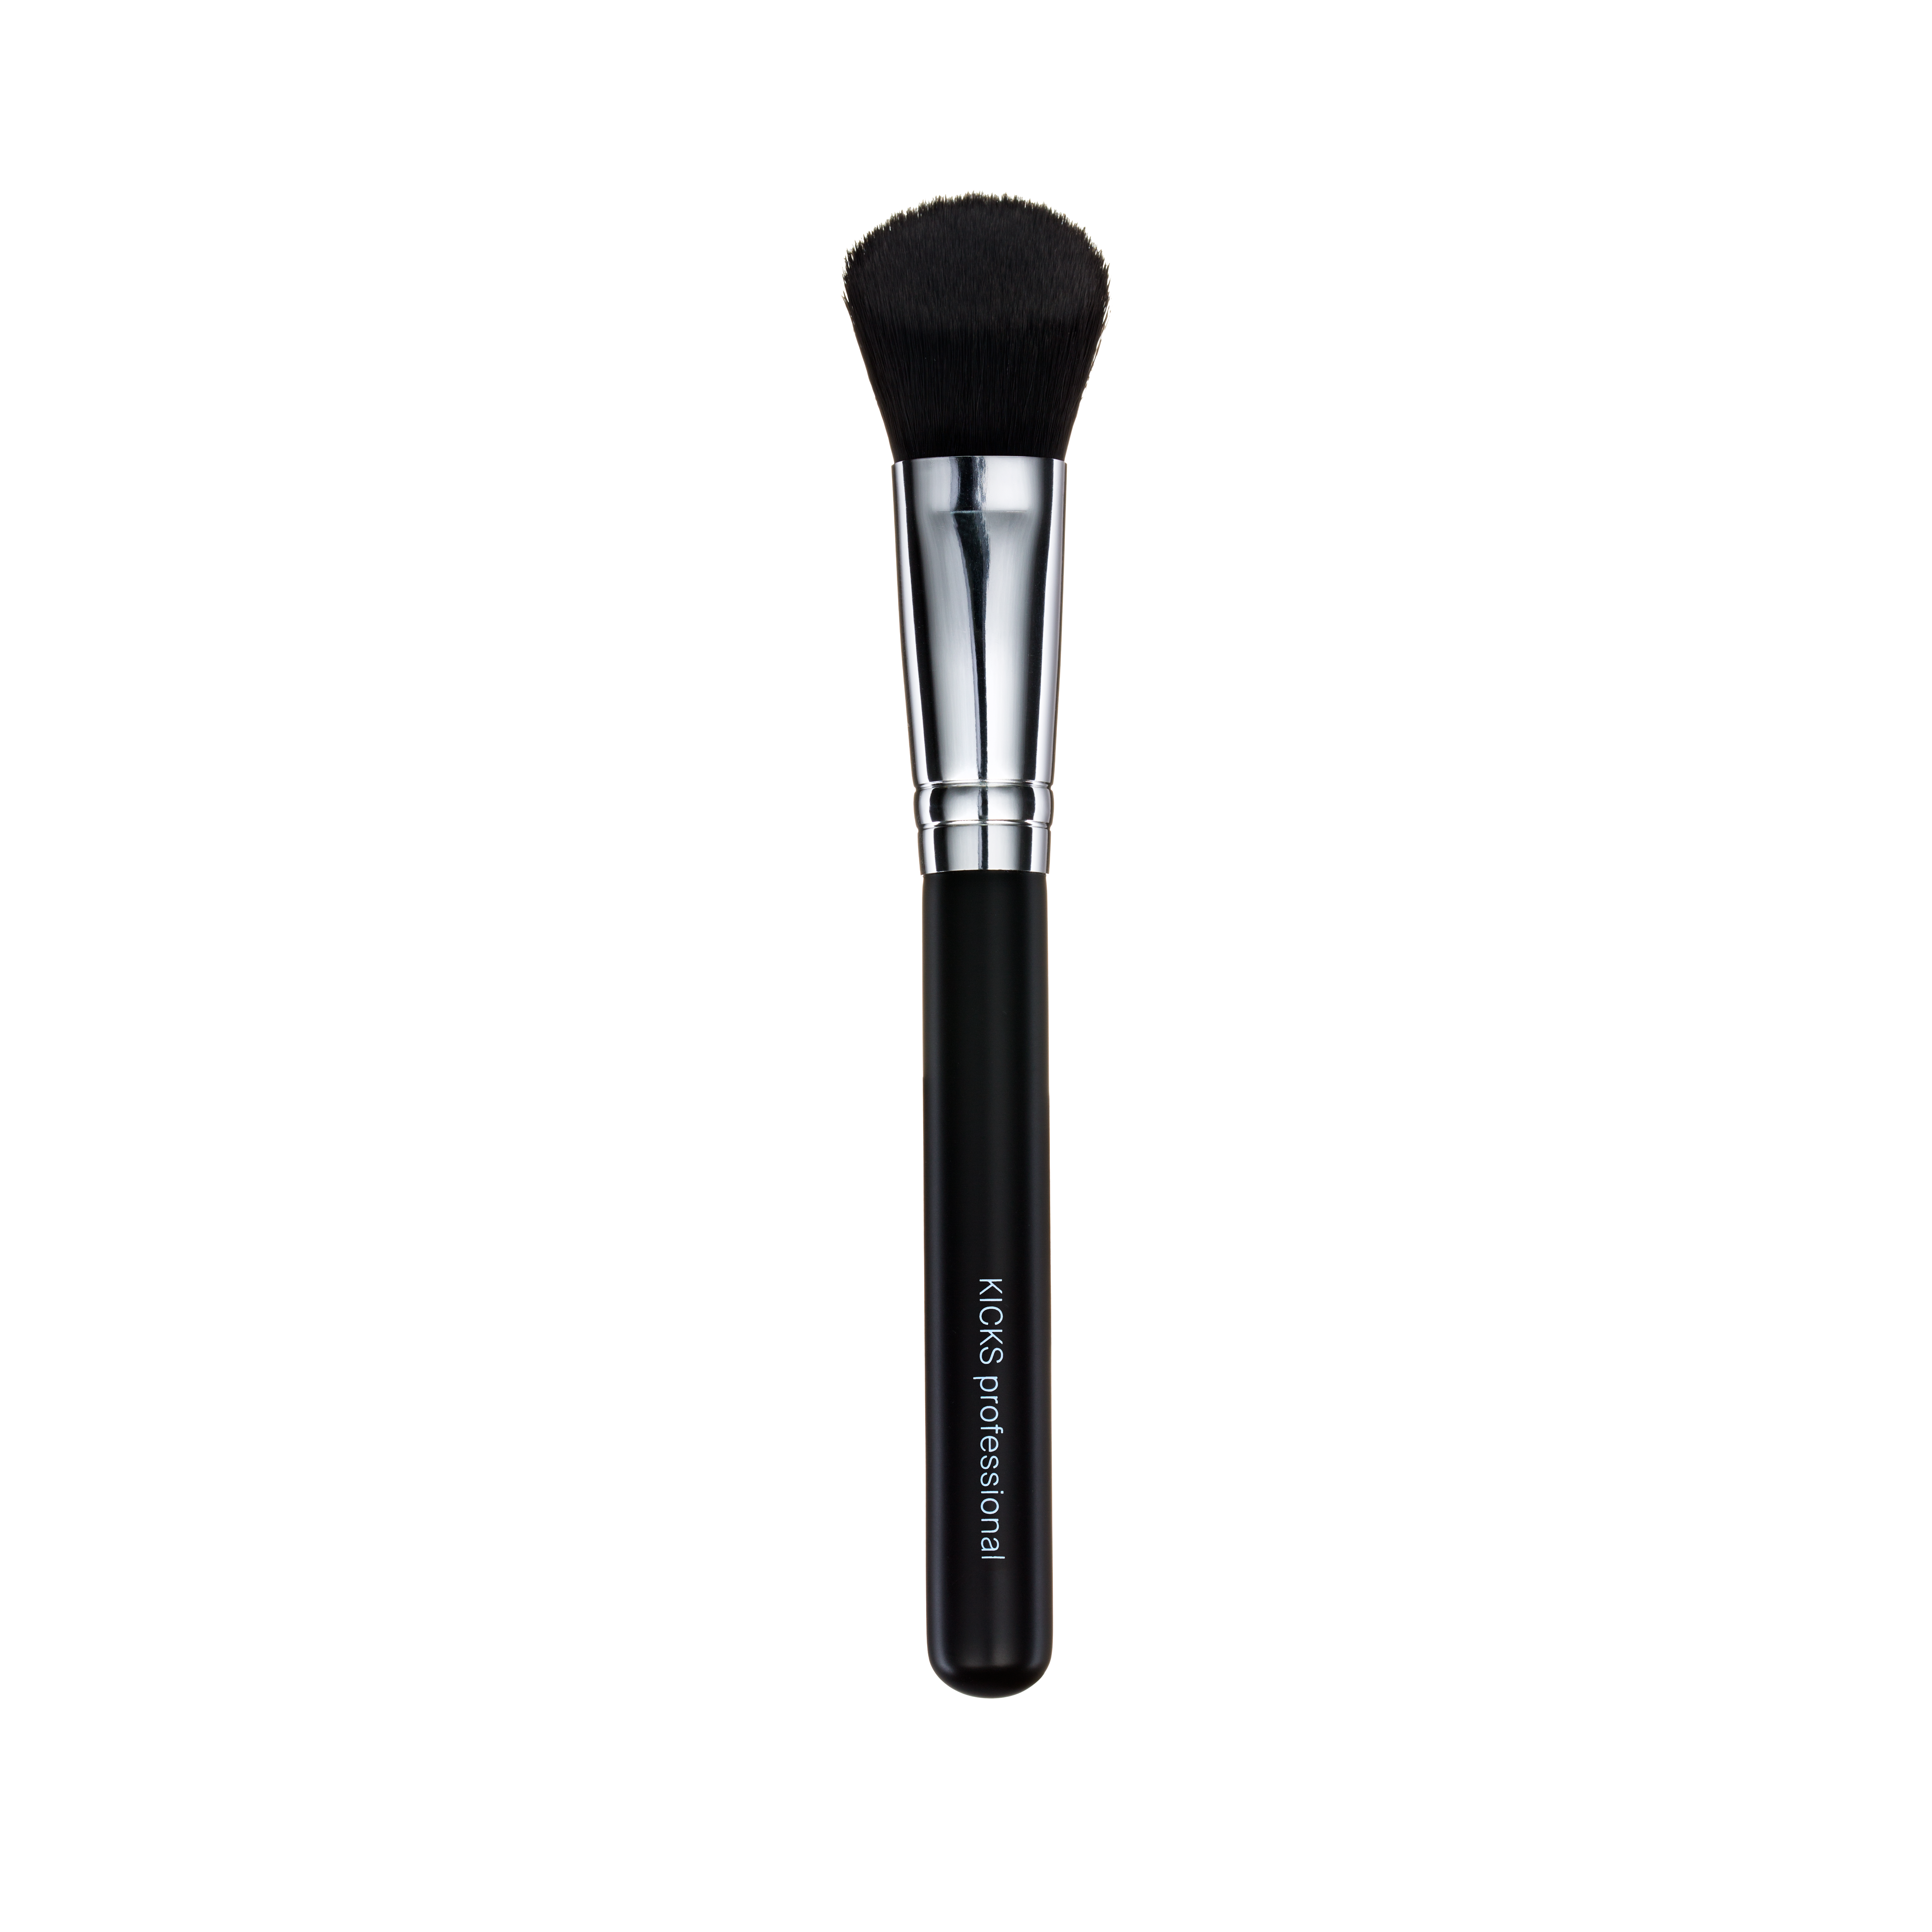 Angled Precision Brush